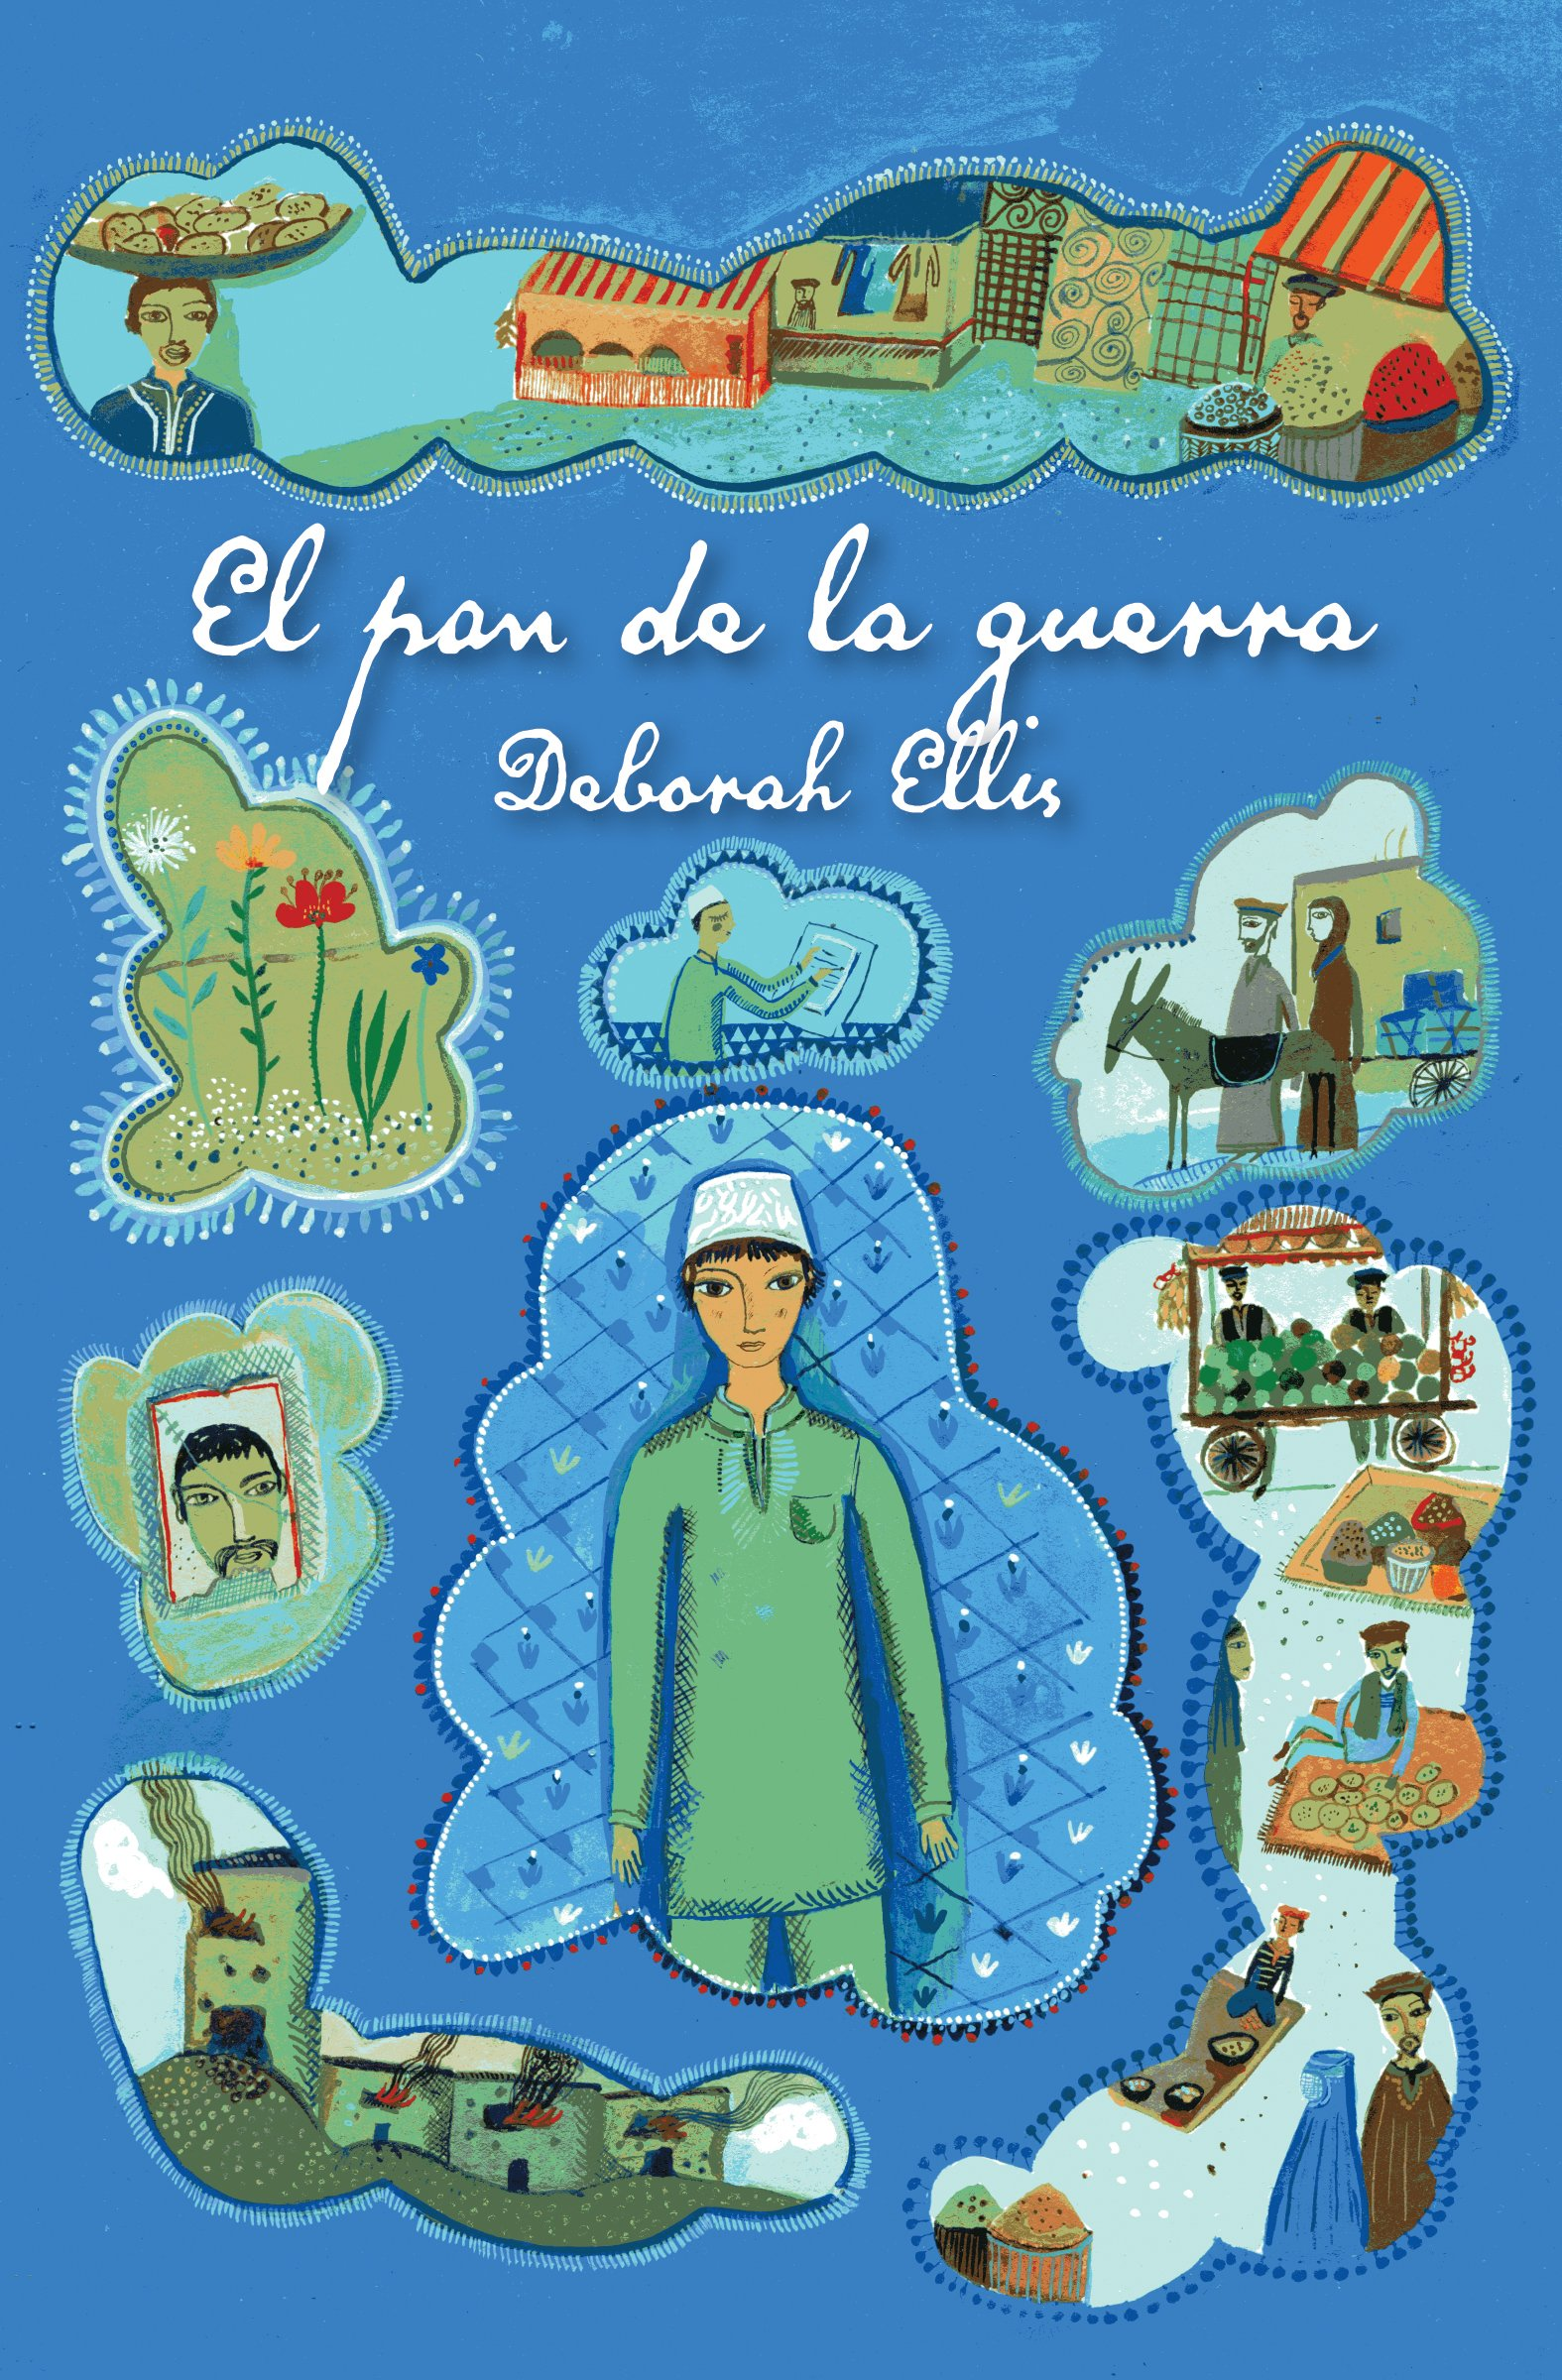 El pan de la guerra (Spanish Edition): Deborah Ellis: 9781554987641: Amazon.com: Books